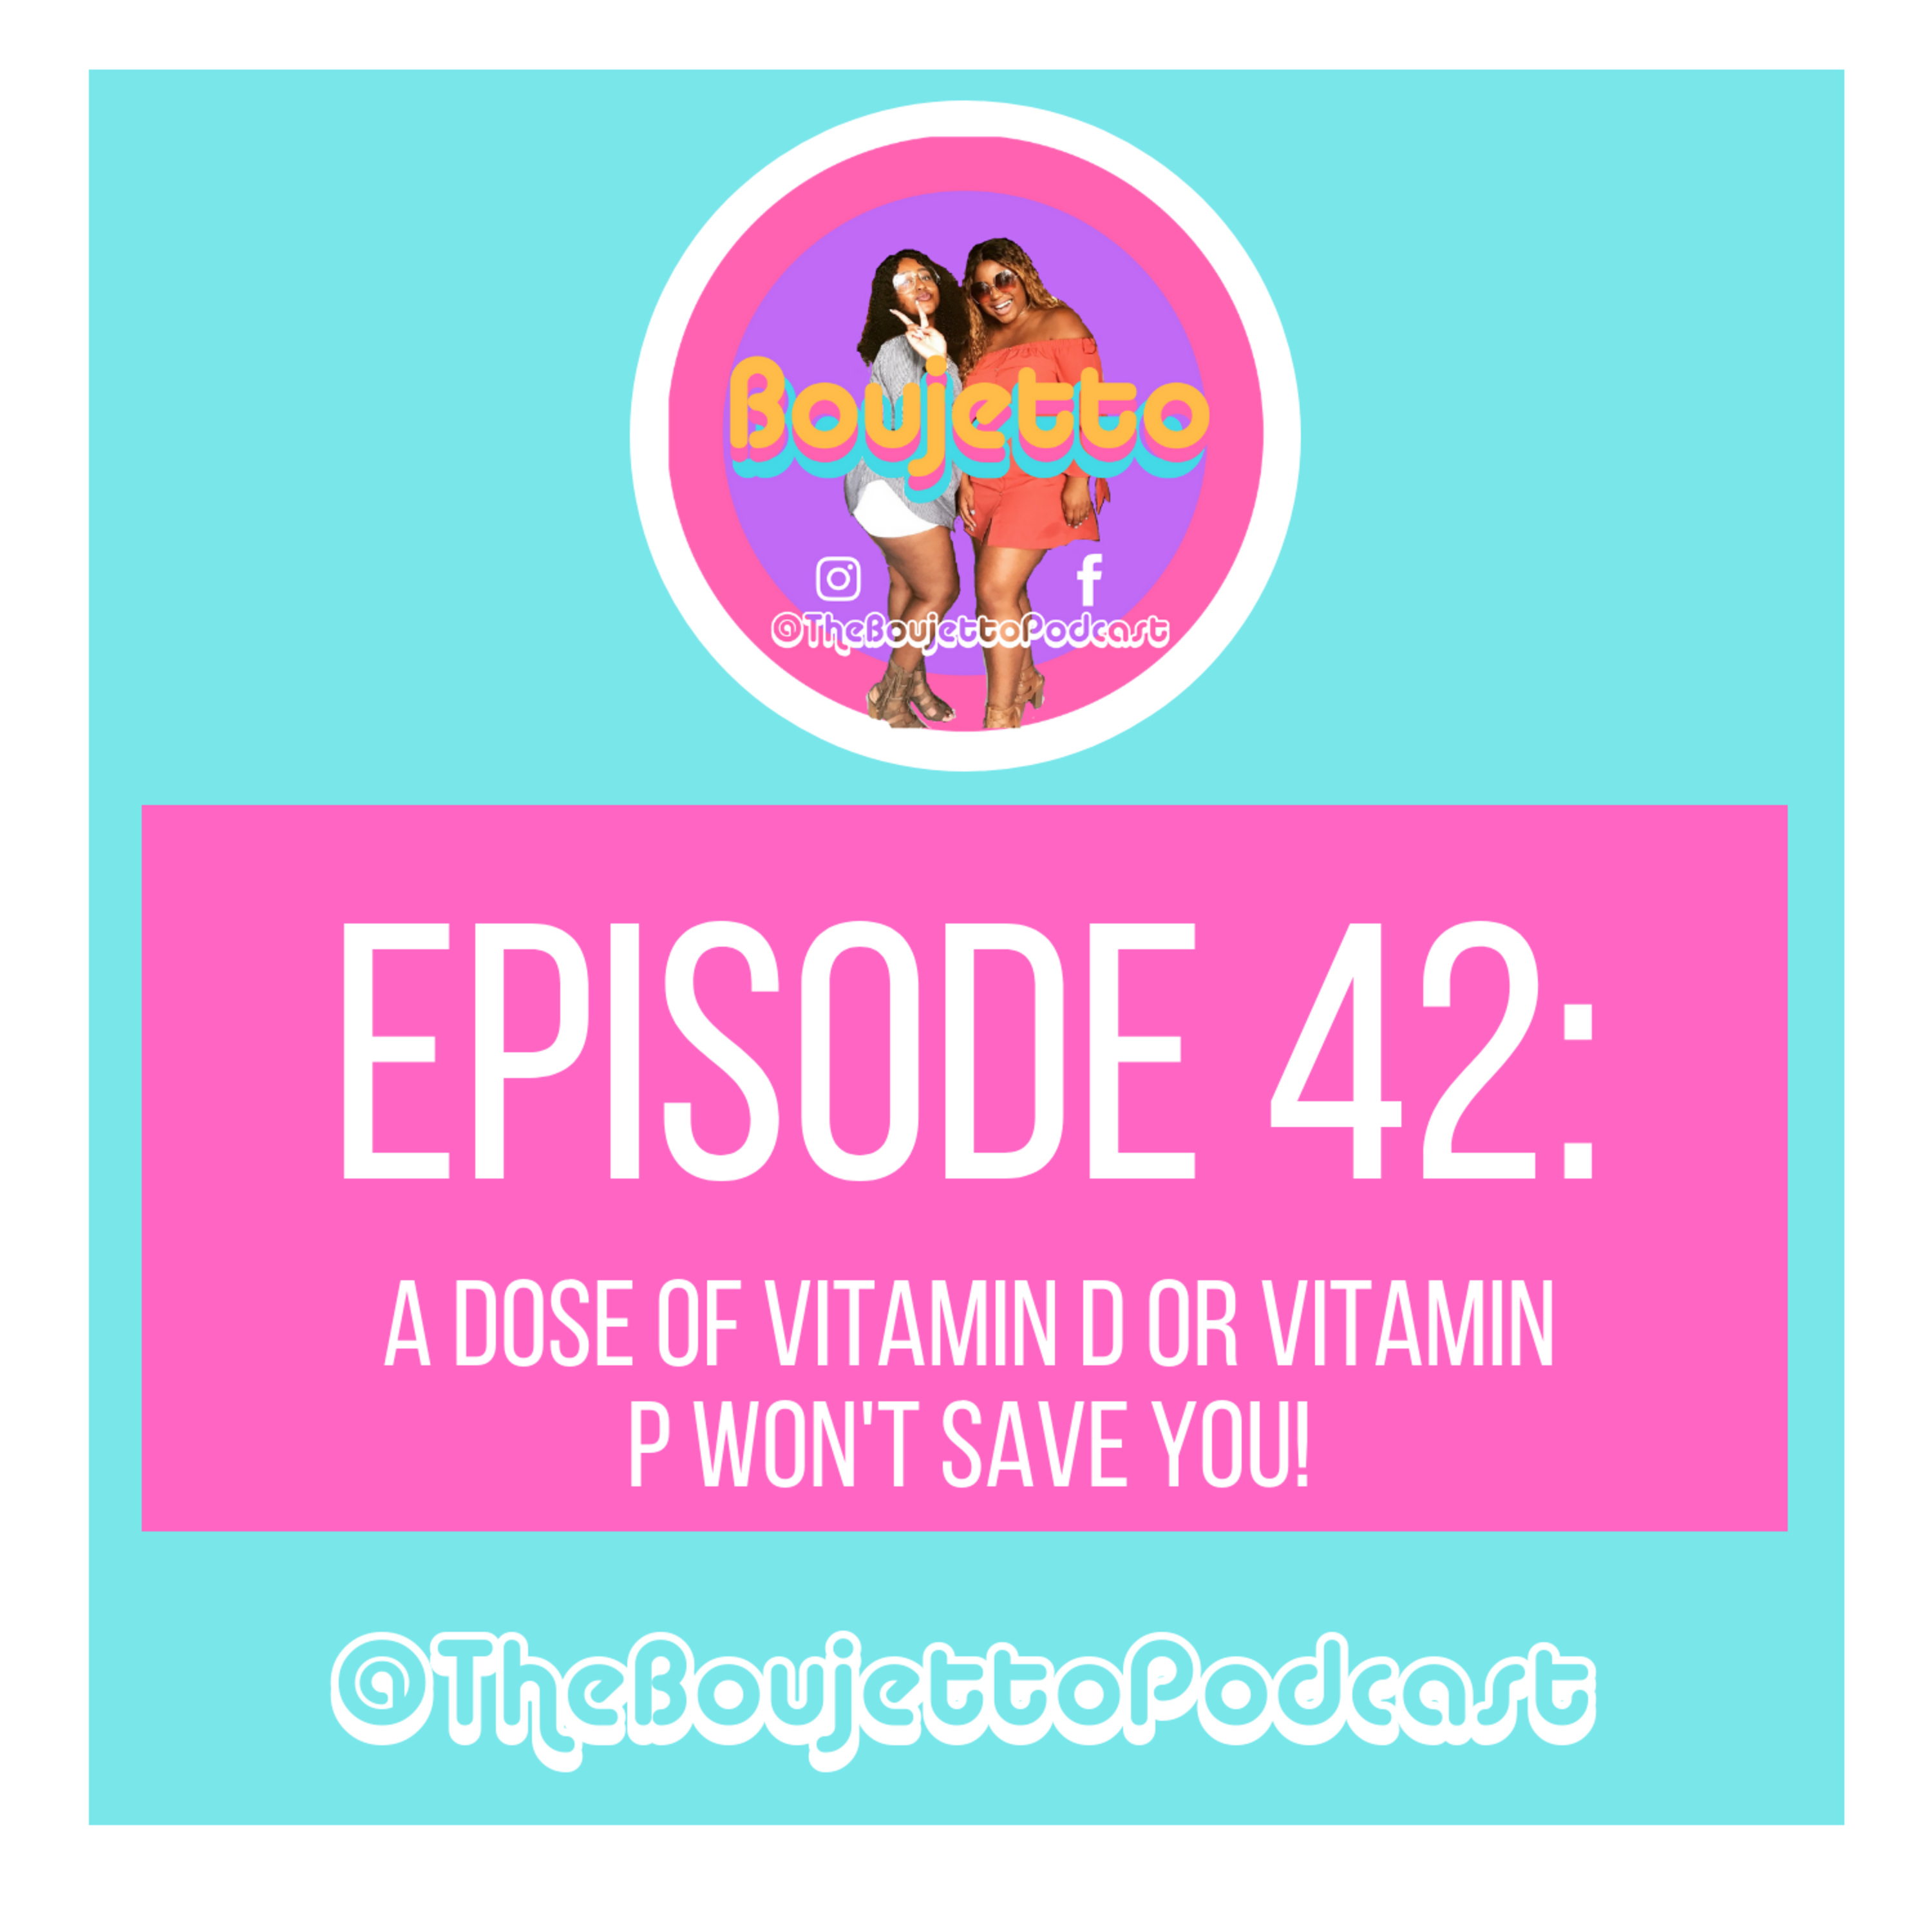 Episode 42: A Dose of Vitamin P or Vitamin D Won't Save You!